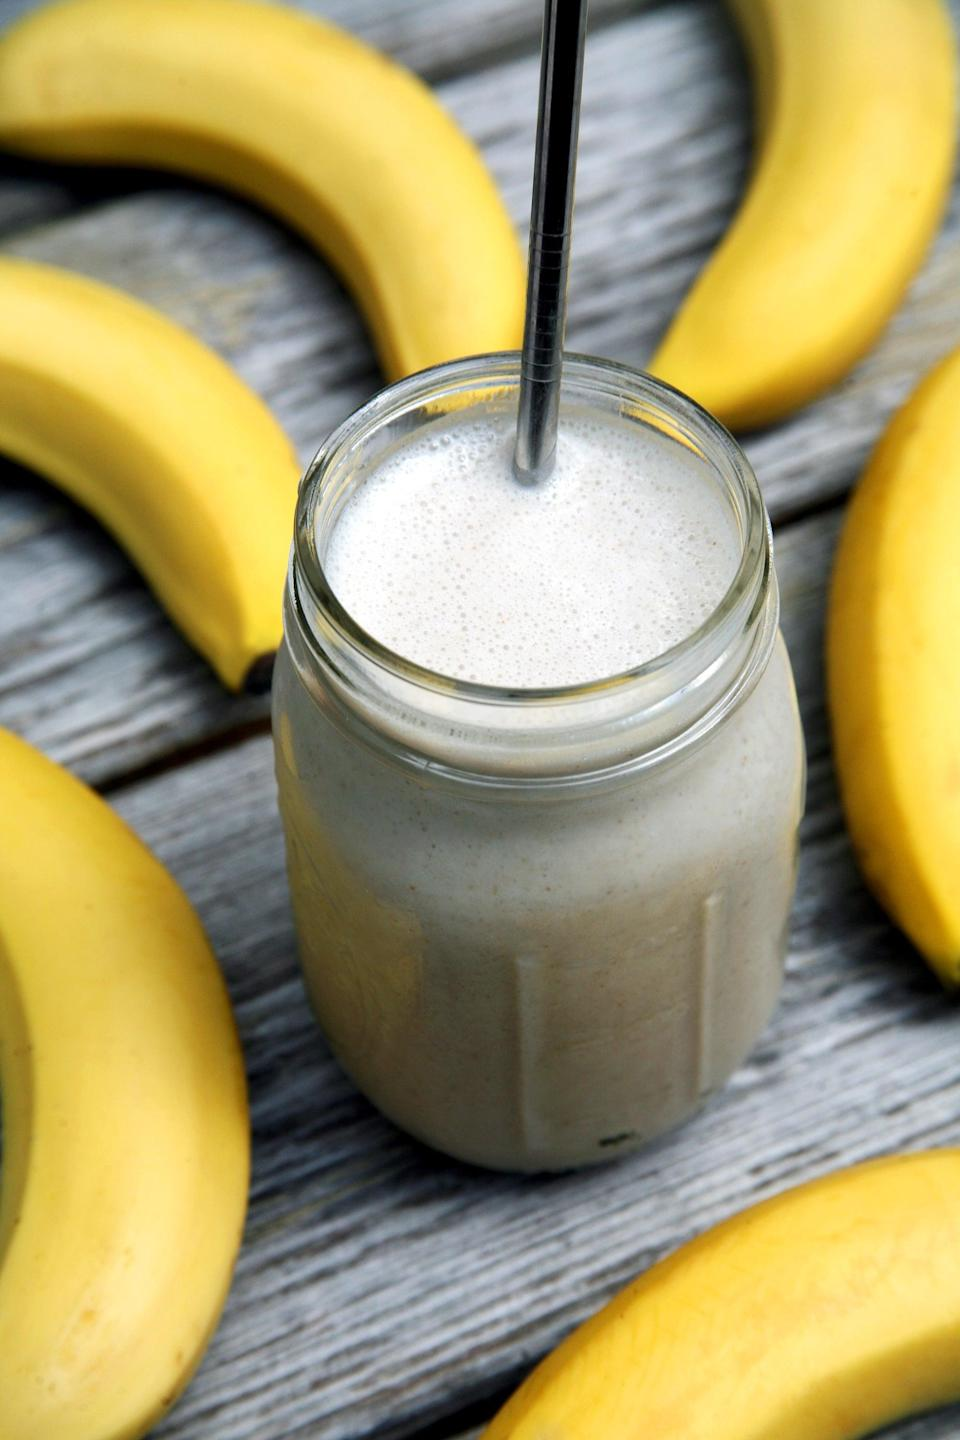 """<p>Creamy, smooth, subtly sweet, and high in protein, this banana milkshake smoothie offers over 20 grams of protein, but it's not made with protein powder or dairy products. </p> <p><strong>Get the recipe:</strong> <a href=""""https://www.popsugar.com/fitness/High-Protein-Smoothie-42297968"""" class=""""link rapid-noclick-resp"""" rel=""""nofollow noopener"""" target=""""_blank"""" data-ylk=""""slk:banana milkshake smoothie"""">banana milkshake smoothie</a></p>"""